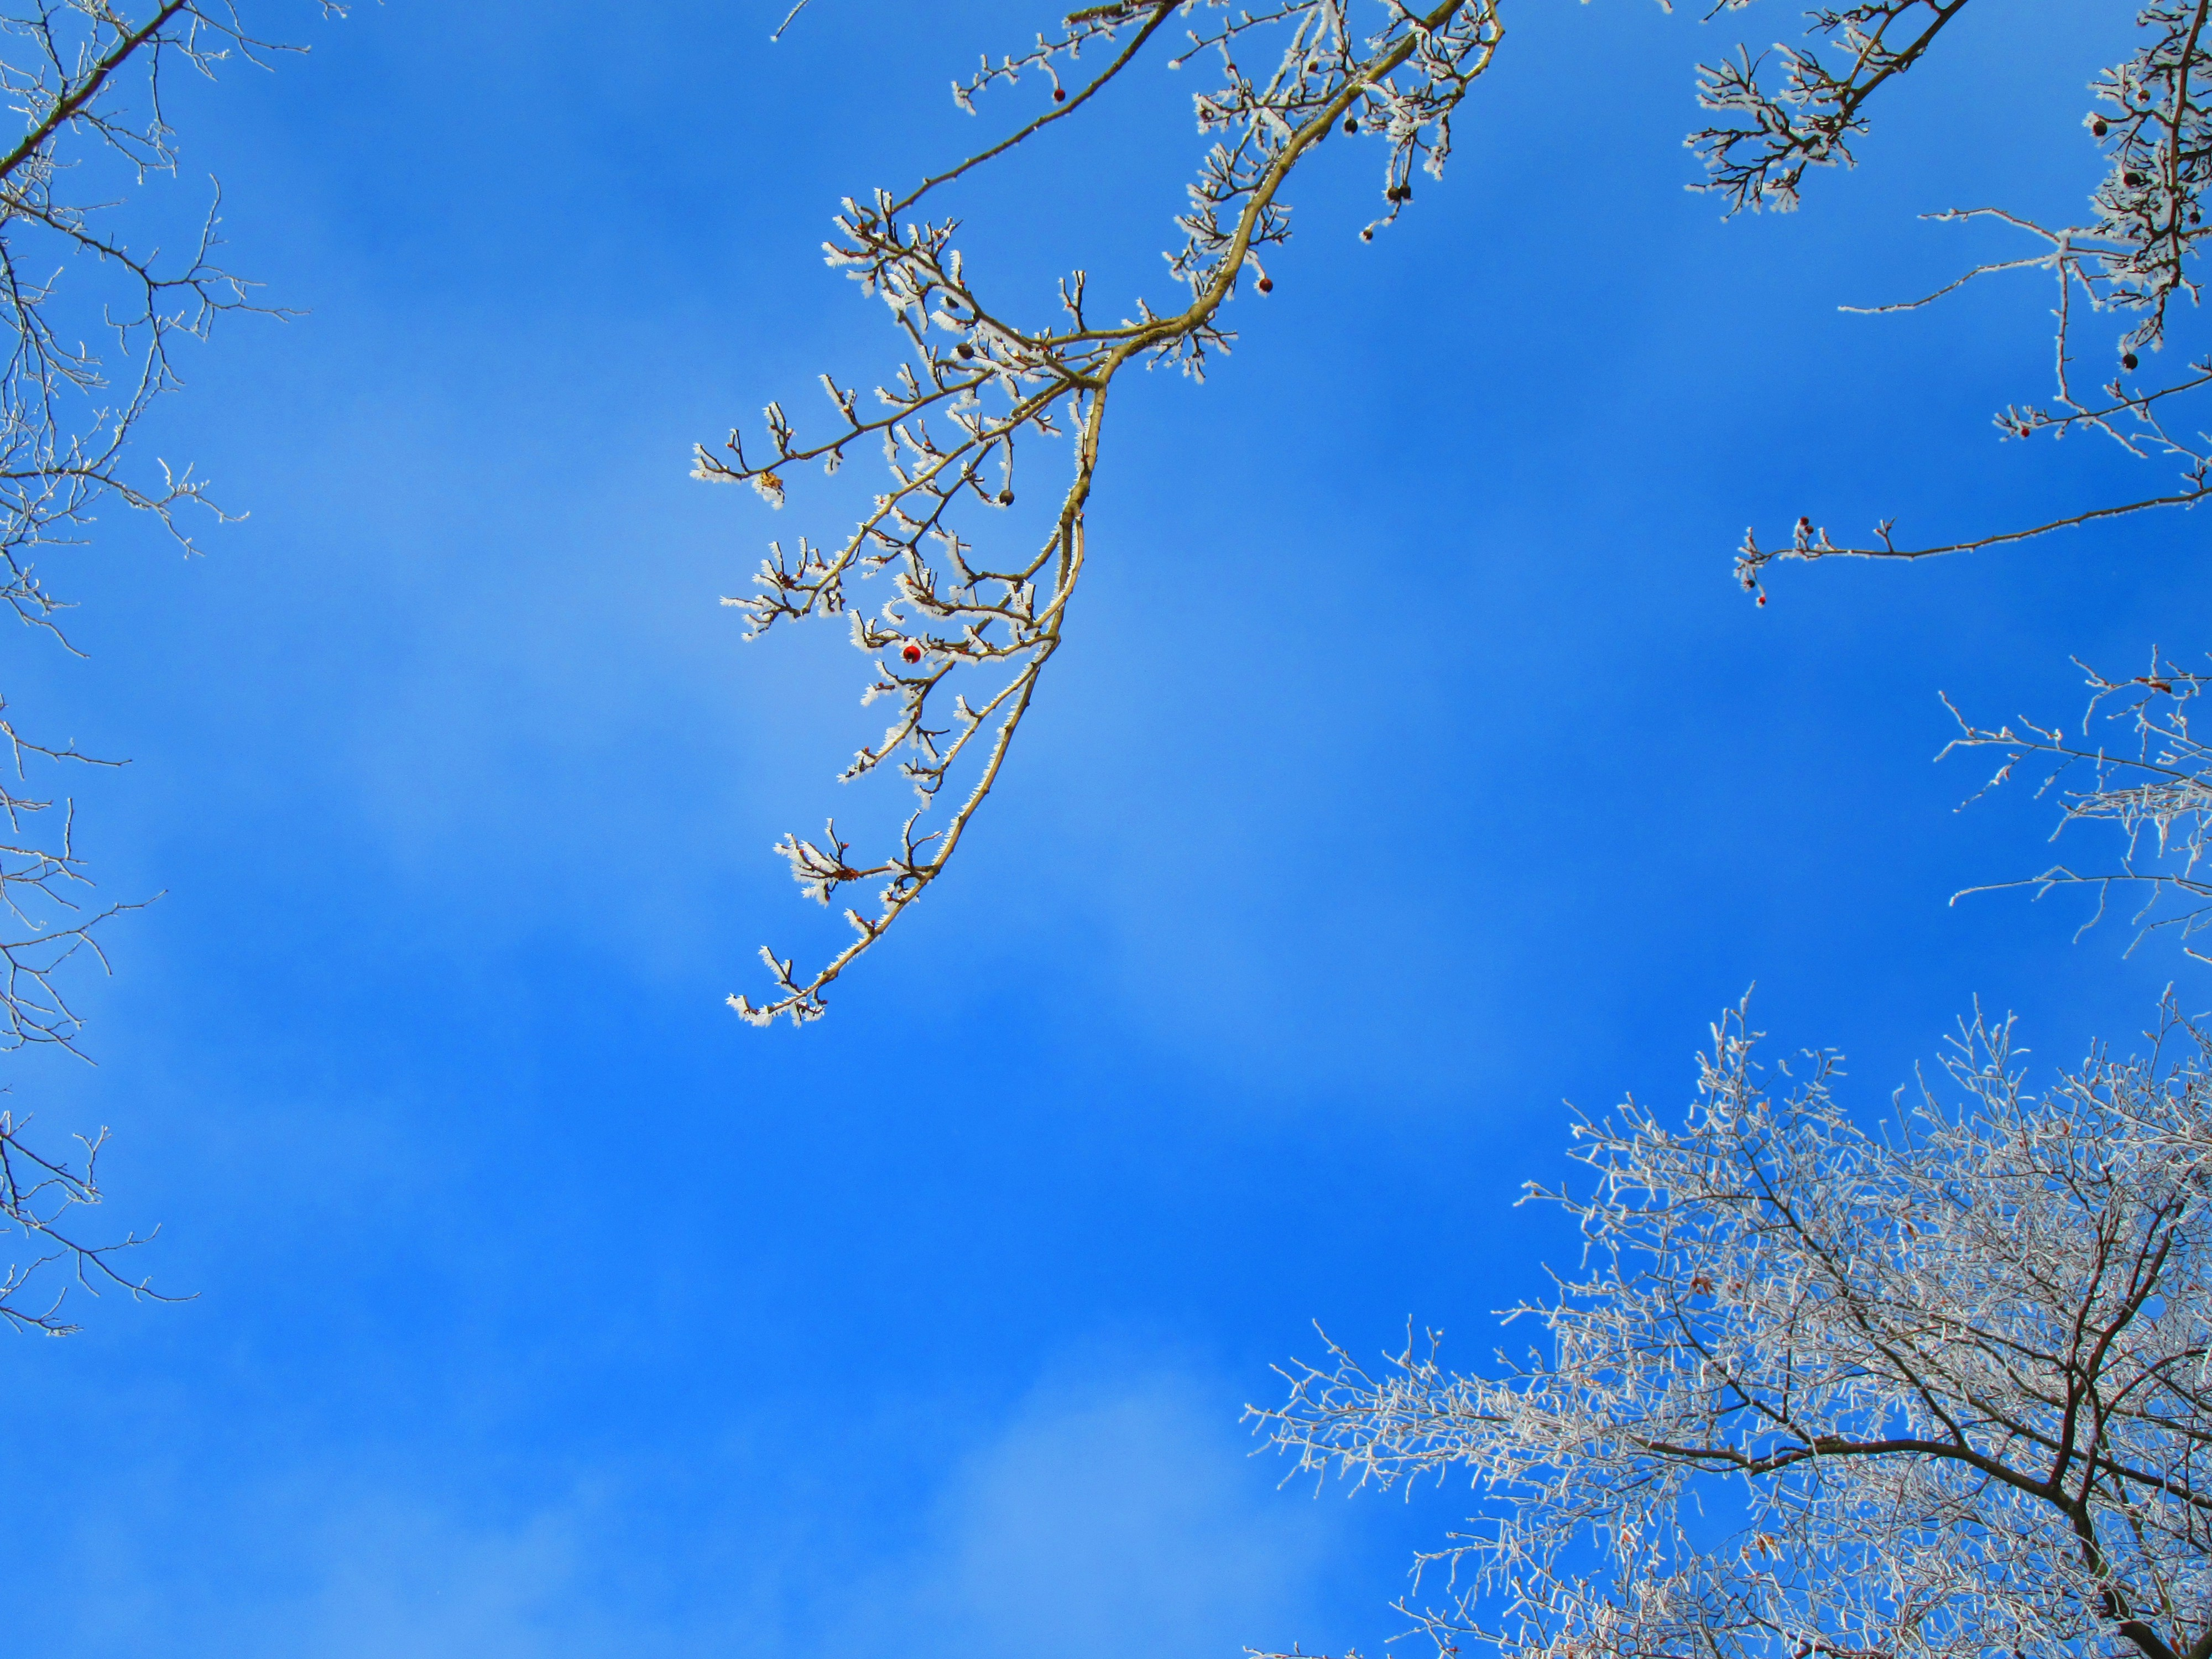 Looking up at the blue sky with tree branches coated in rime ice.